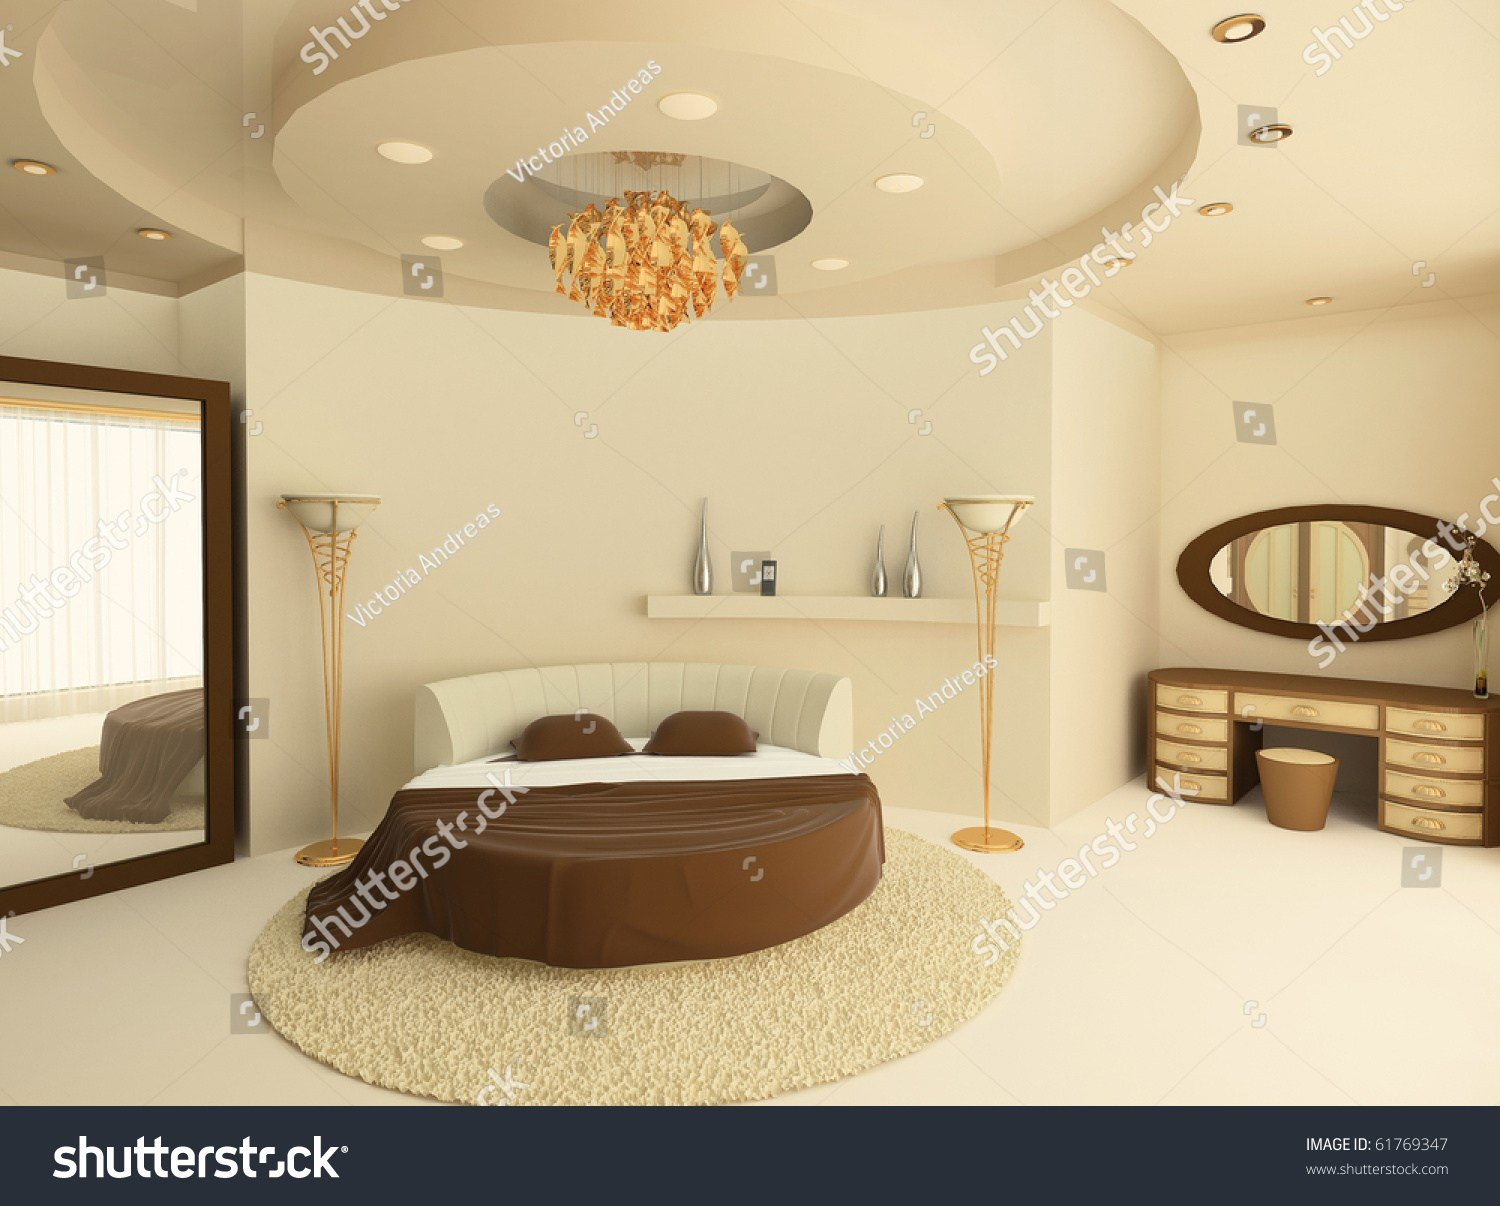 Best Round Bed With A Suspended Ceiling In A Luxurious Bedroom With Pictures